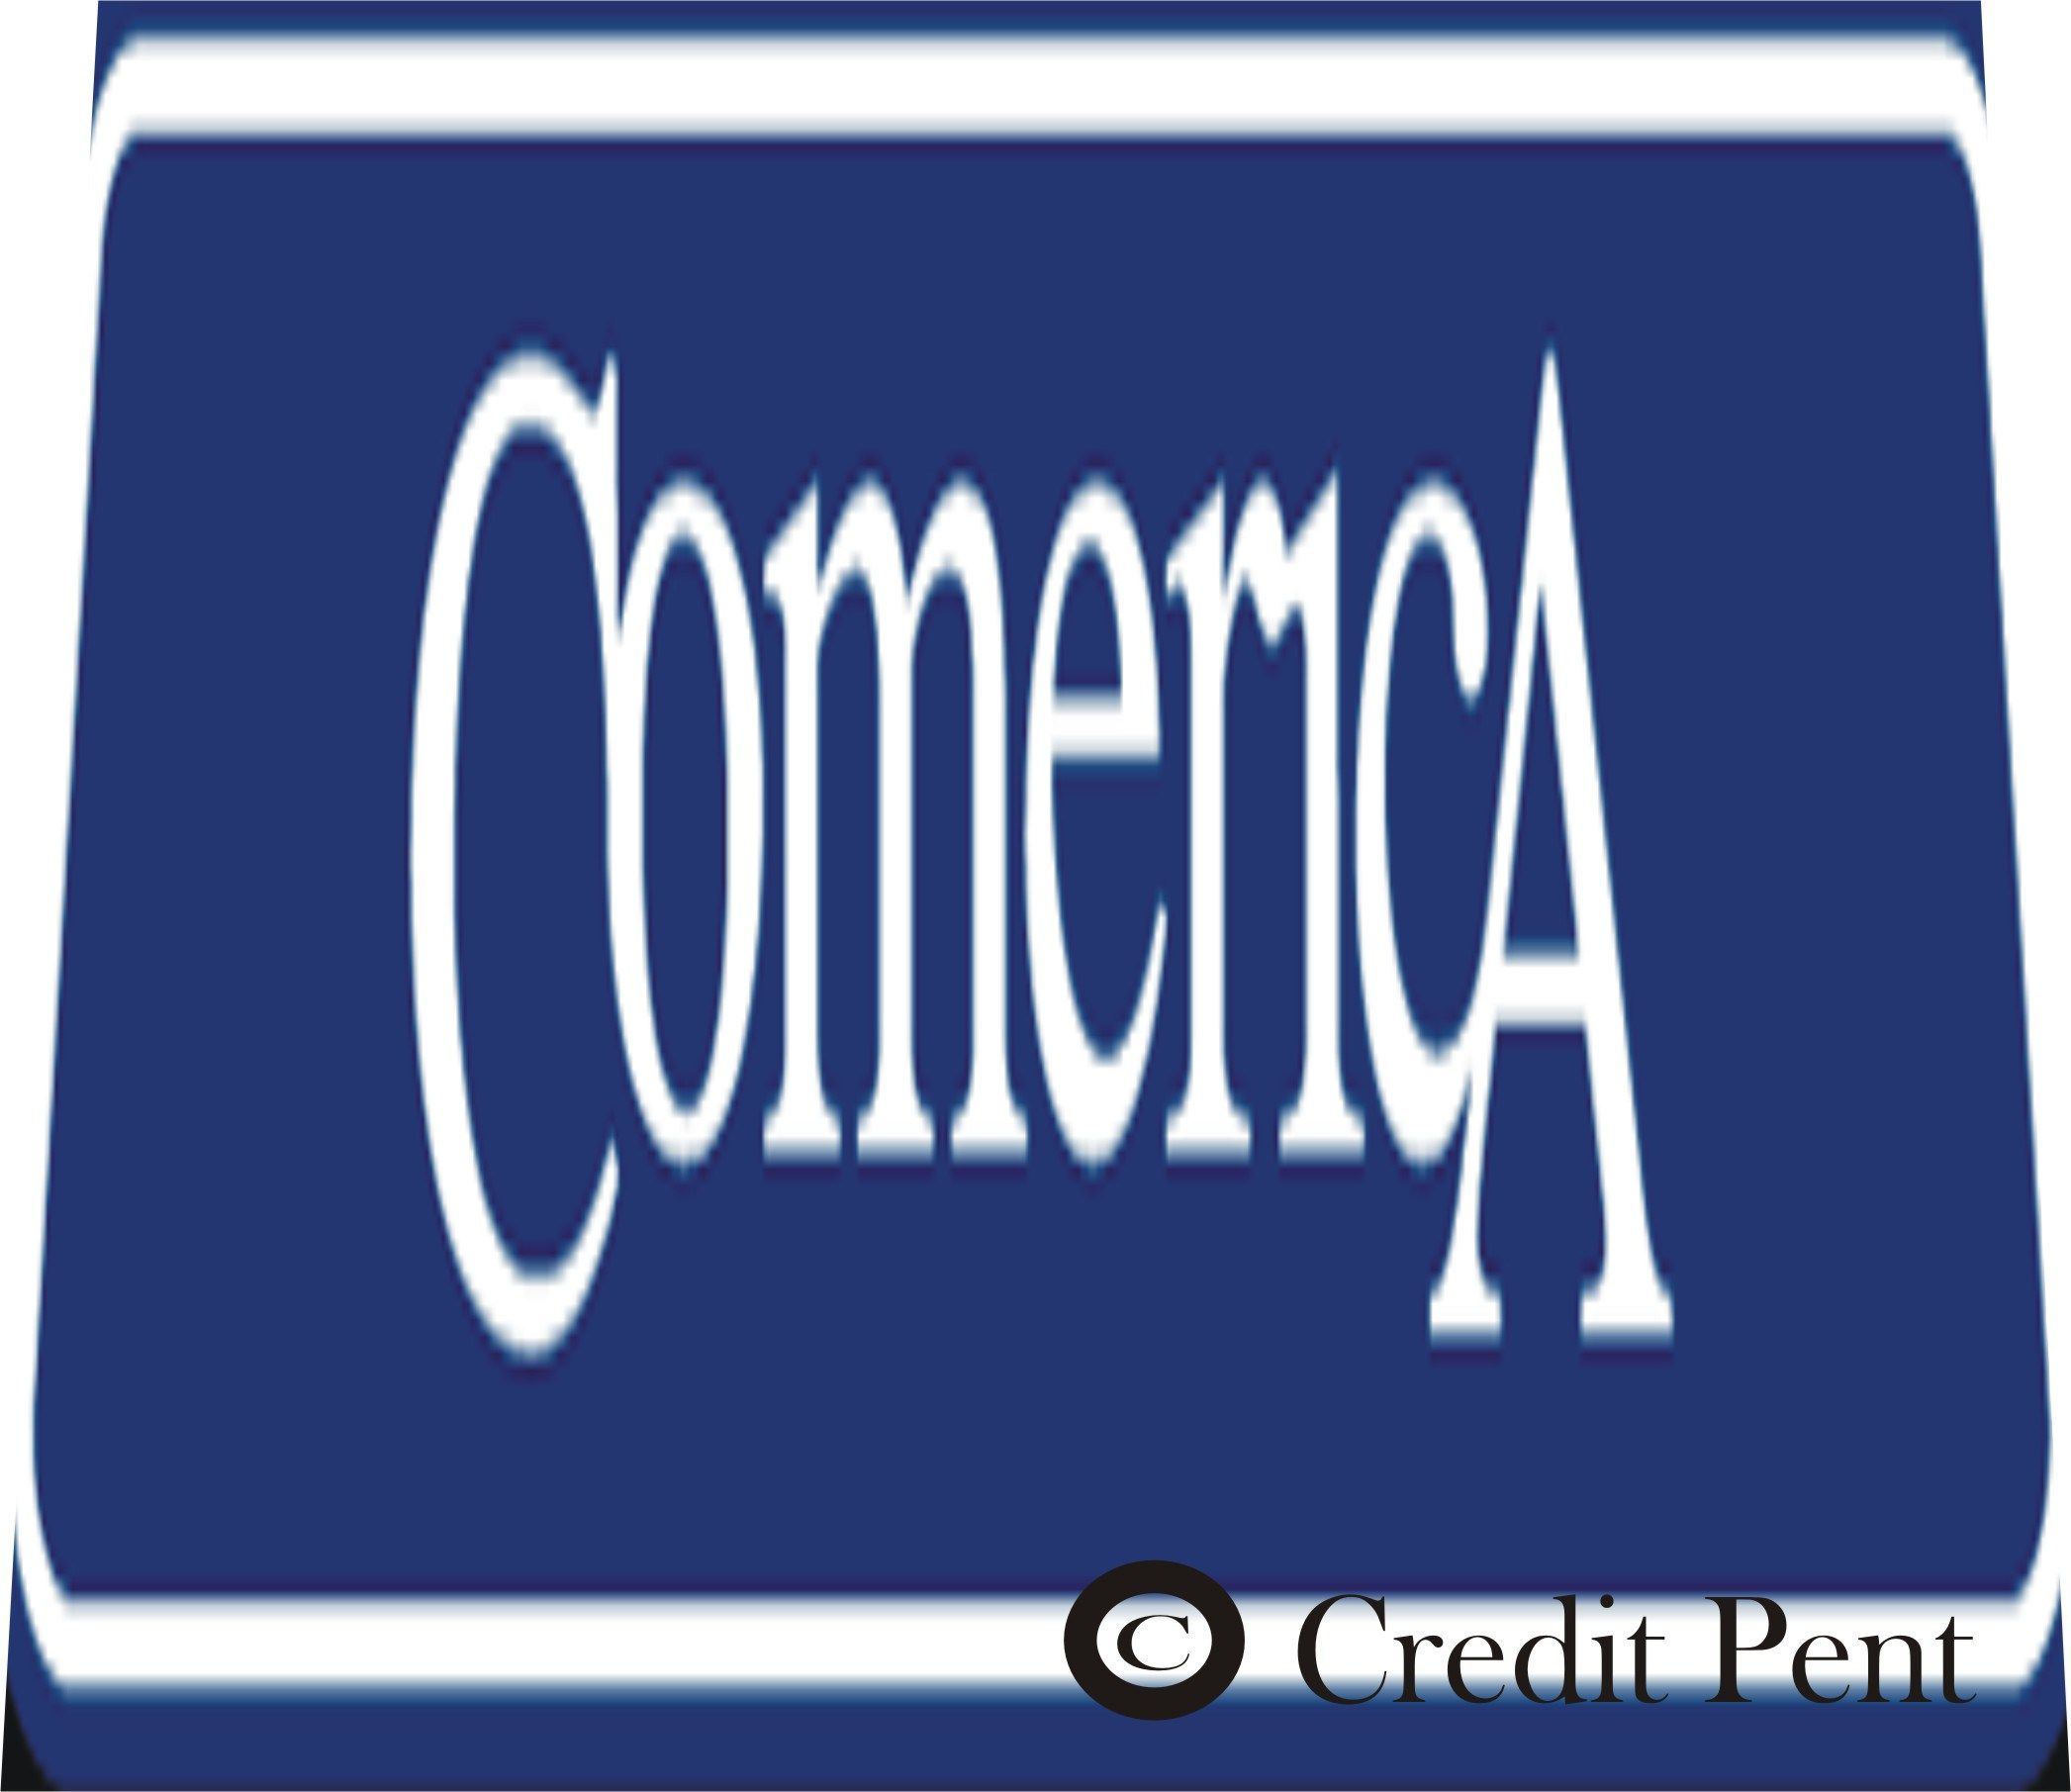 Comerica Web Login Open Comerica Bank Account Login Web Banking Credit Card Apply Bank Credit Cards